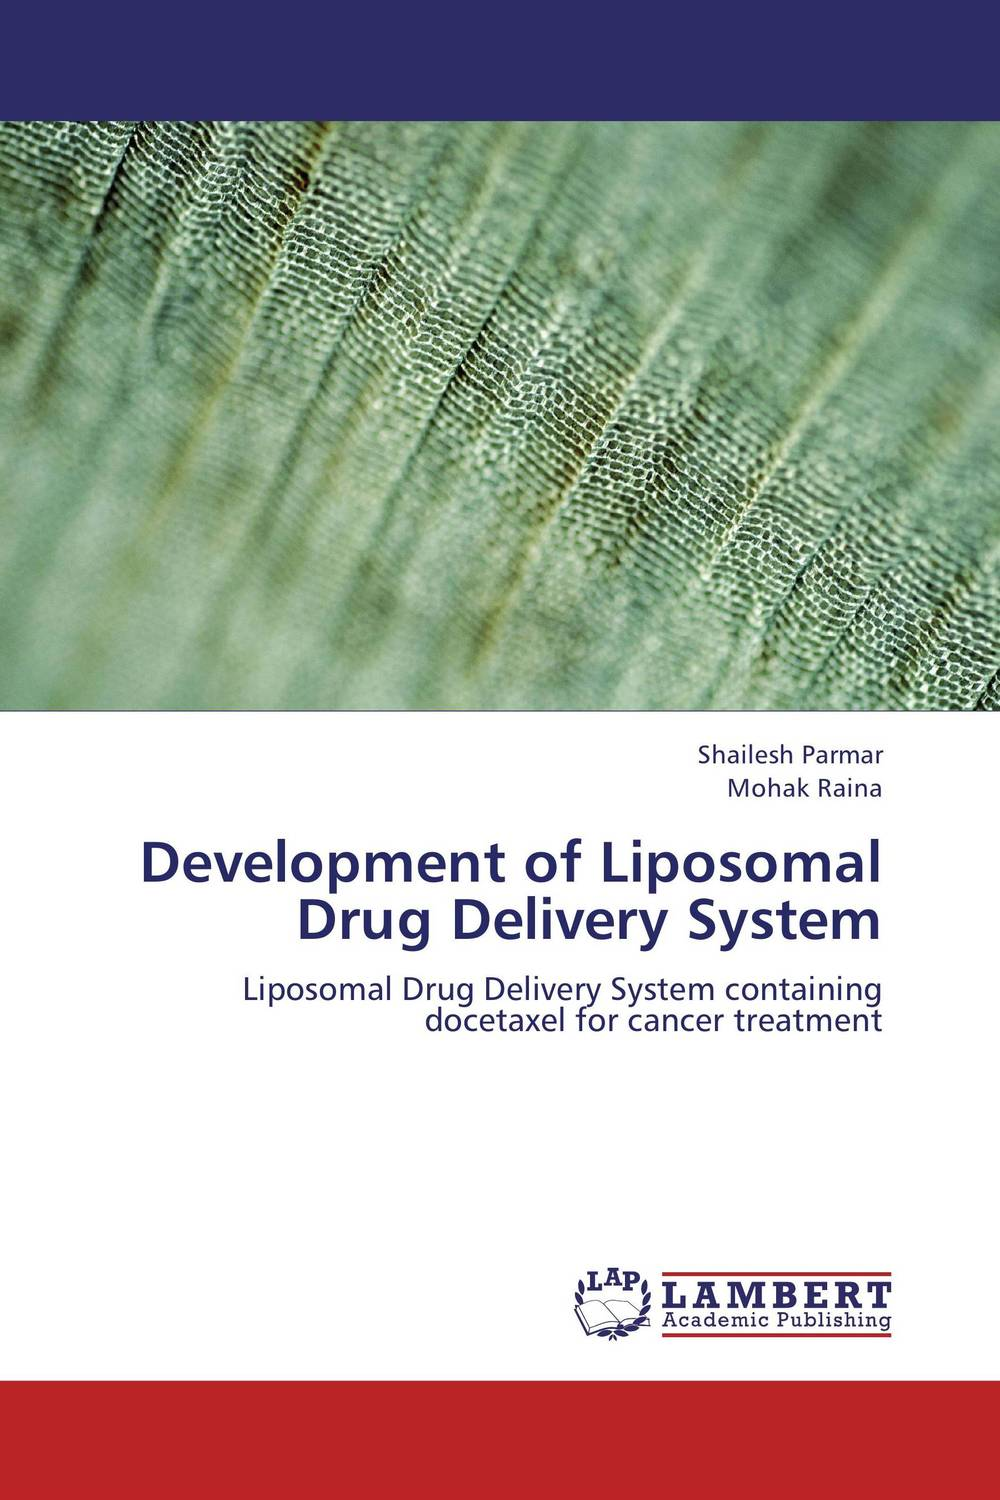 Development of Liposomal Drug Delivery System abhishek kumar sah sunil k jain and manmohan singh jangdey a recent approaches in topical drug delivery system